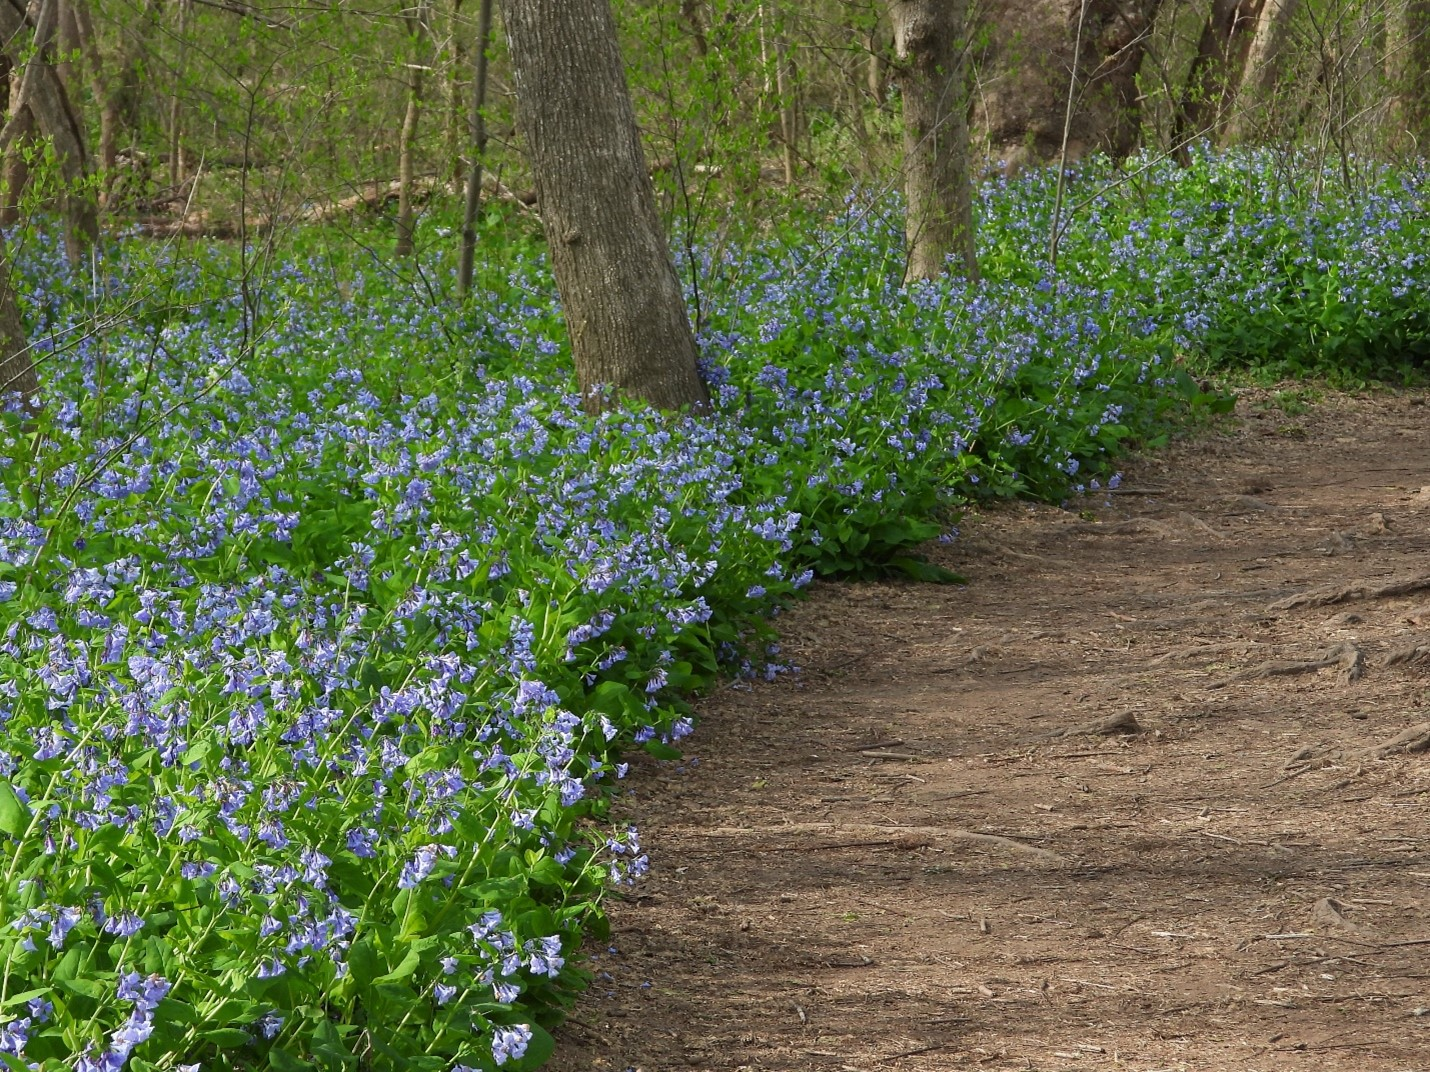 It's Time to Ooh and Aah Over The Bluebells at Riverbend